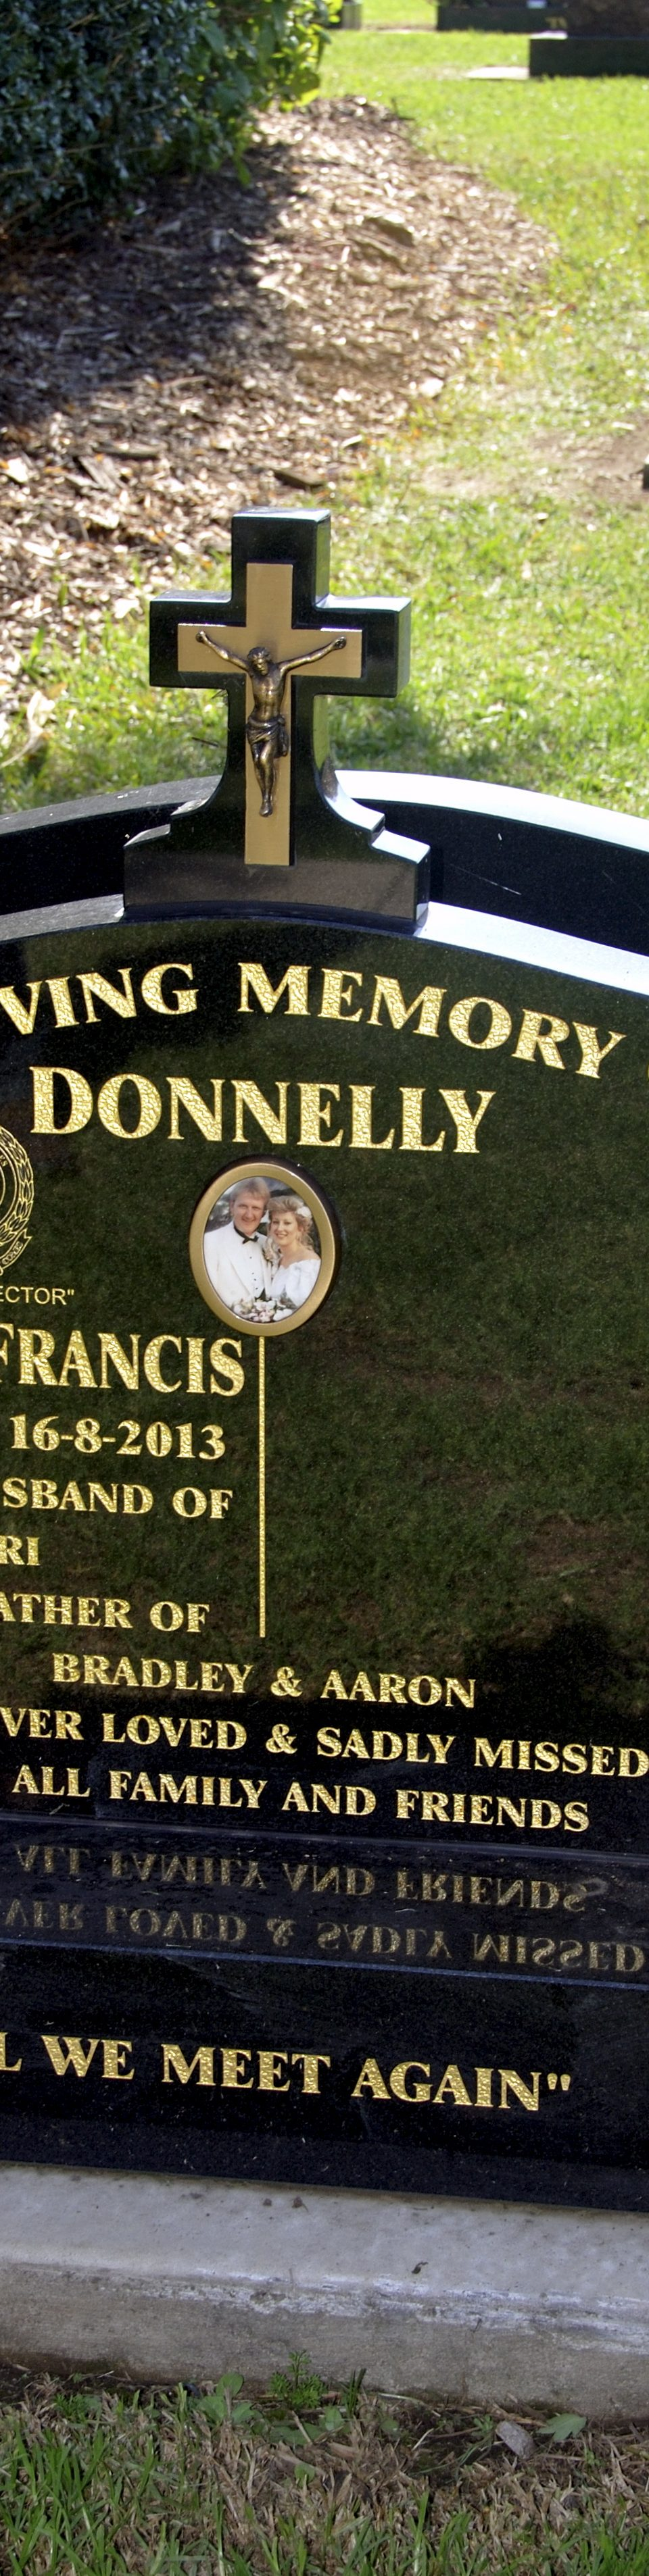 """Graeme Donnelly - Grave. Inscription IN LOVING MEMORY OF DONNELLY GRAEME FRANCIS 8-9-1960 - 16-8-2013 BELOVED HUSBAND OF KERRI DEVOTED FATHER OF BRADLEY & AARON FOREVER LOVED & SADLY MISSED BY ALL FAMILY AND FRIENDS """"TILL WE MEET AGAIN"""""""